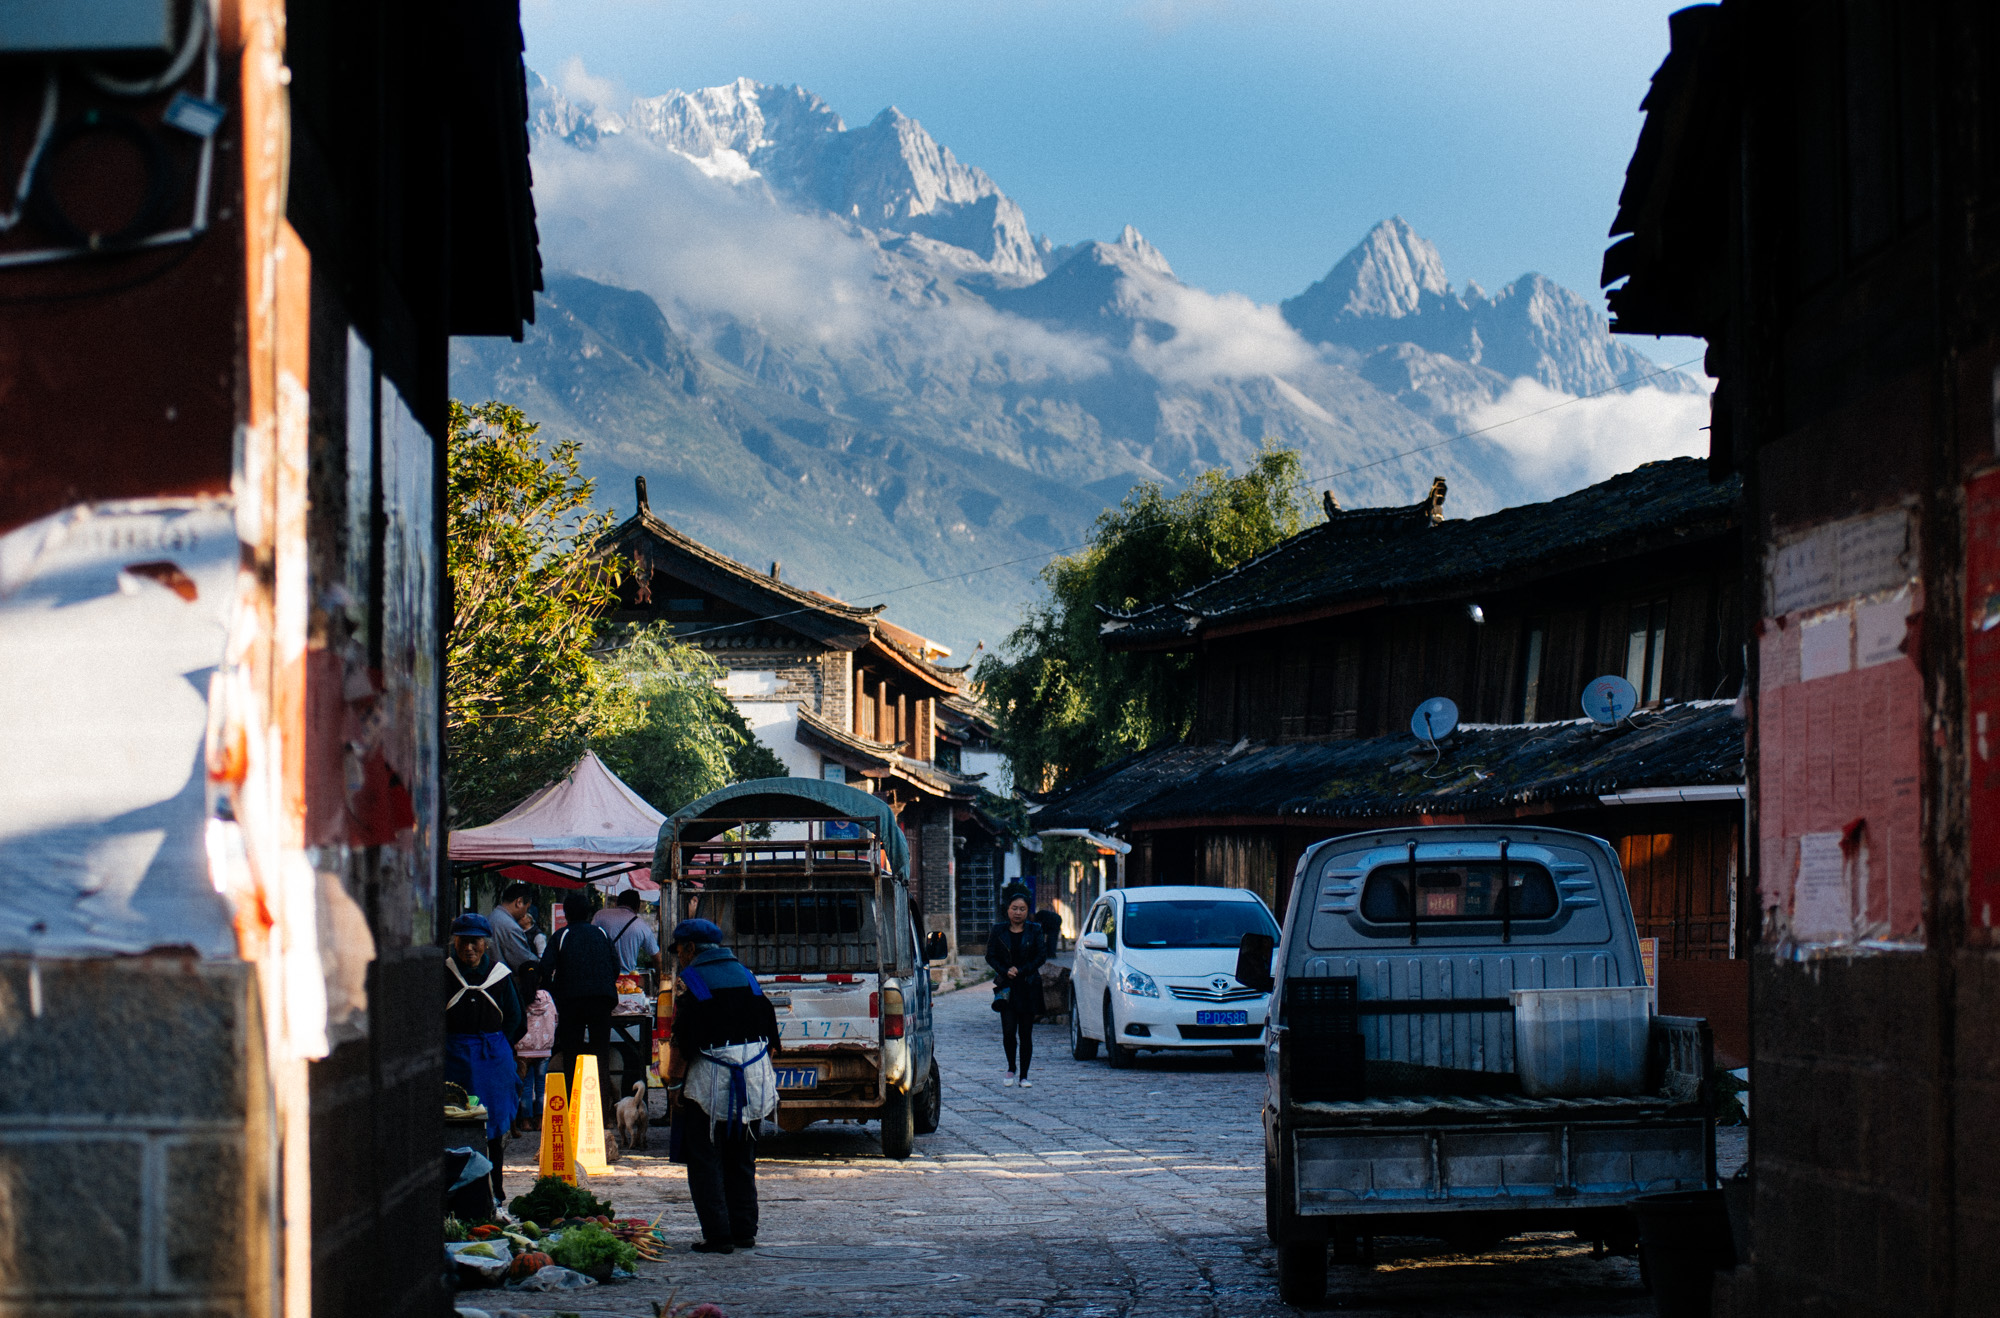 Baisha village is on the foothills of the Himalayas. In the back is the Snow Jade Dragon Mountain.